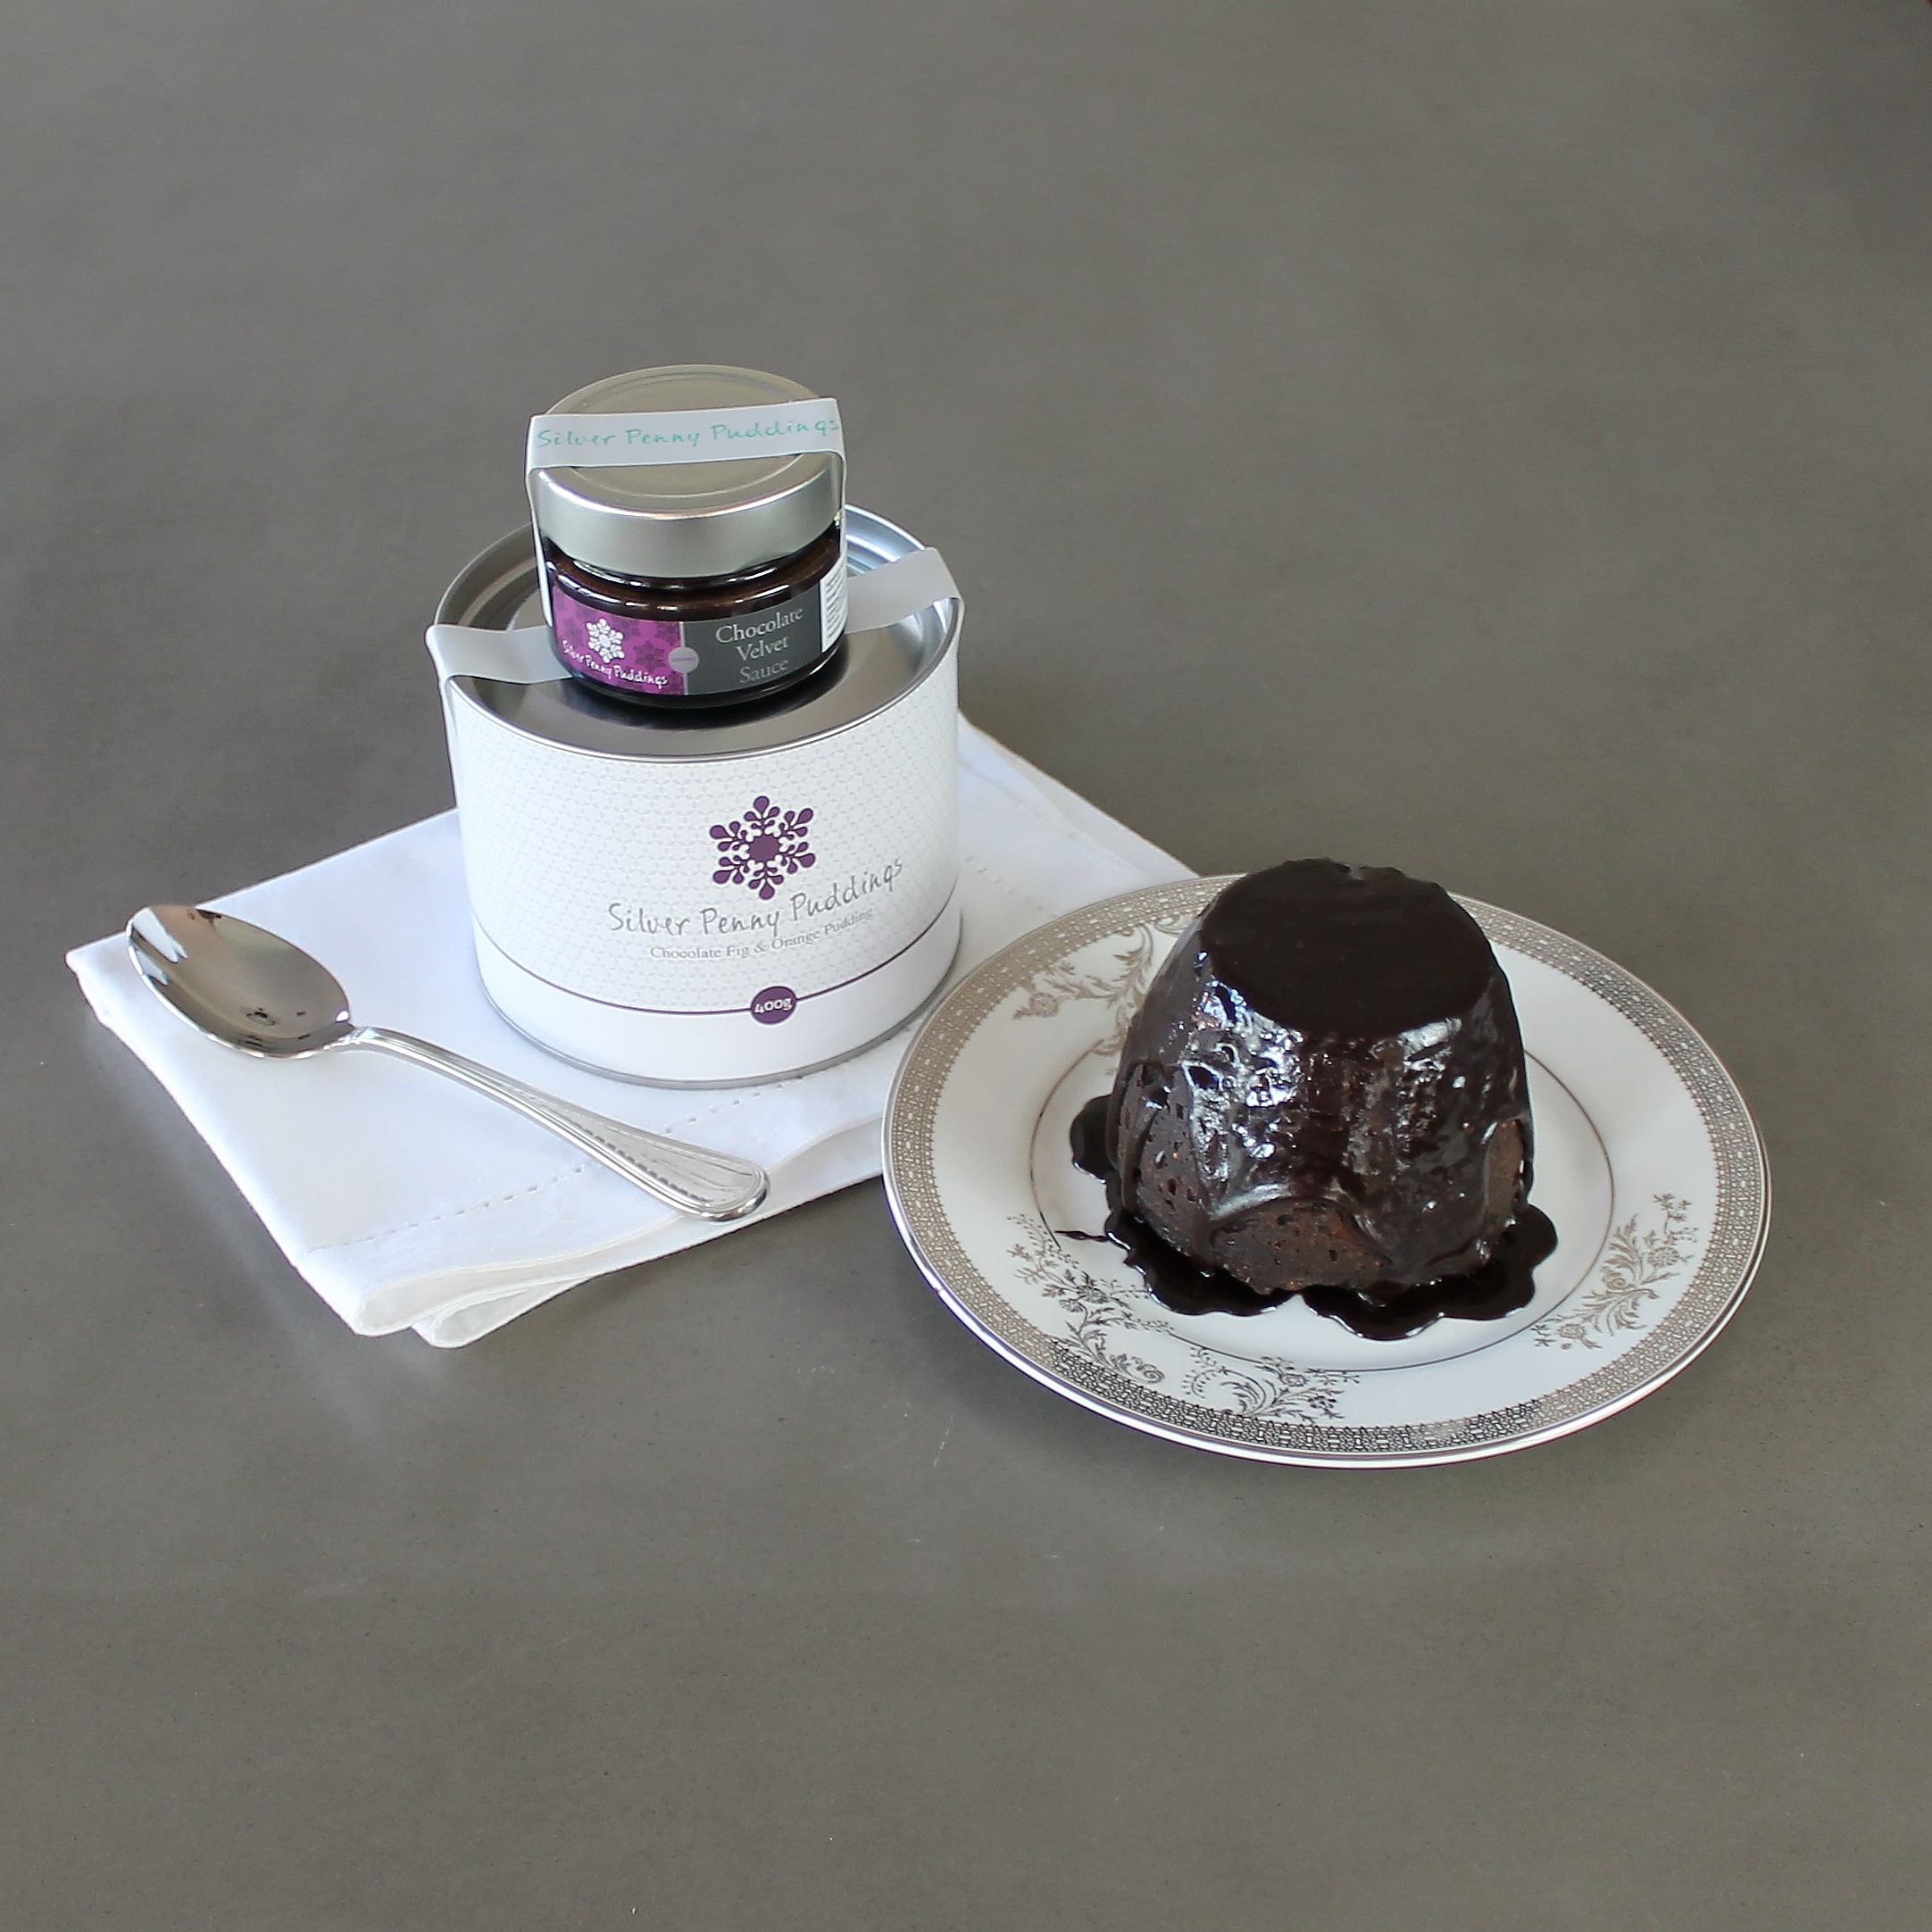 Silver Penny Puddings Chocolate Fig & Orange Pudding